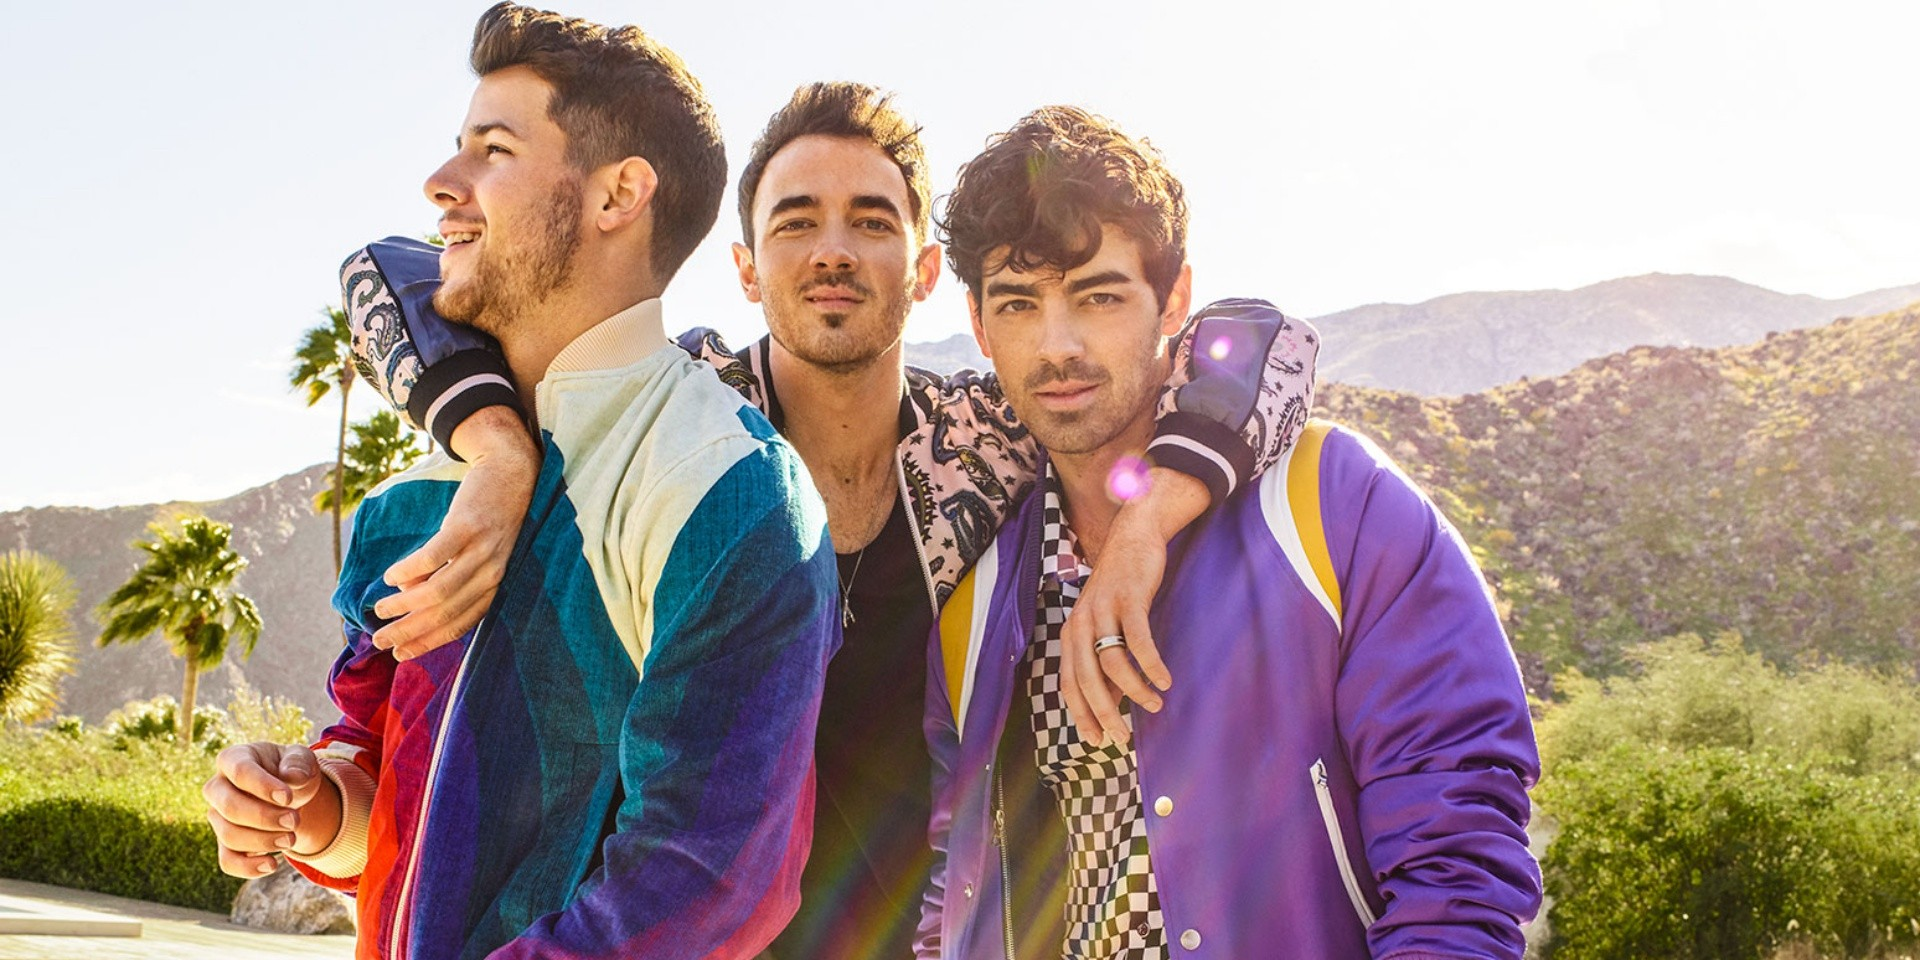 JONAS BROTHERS announce new song 'Cool'